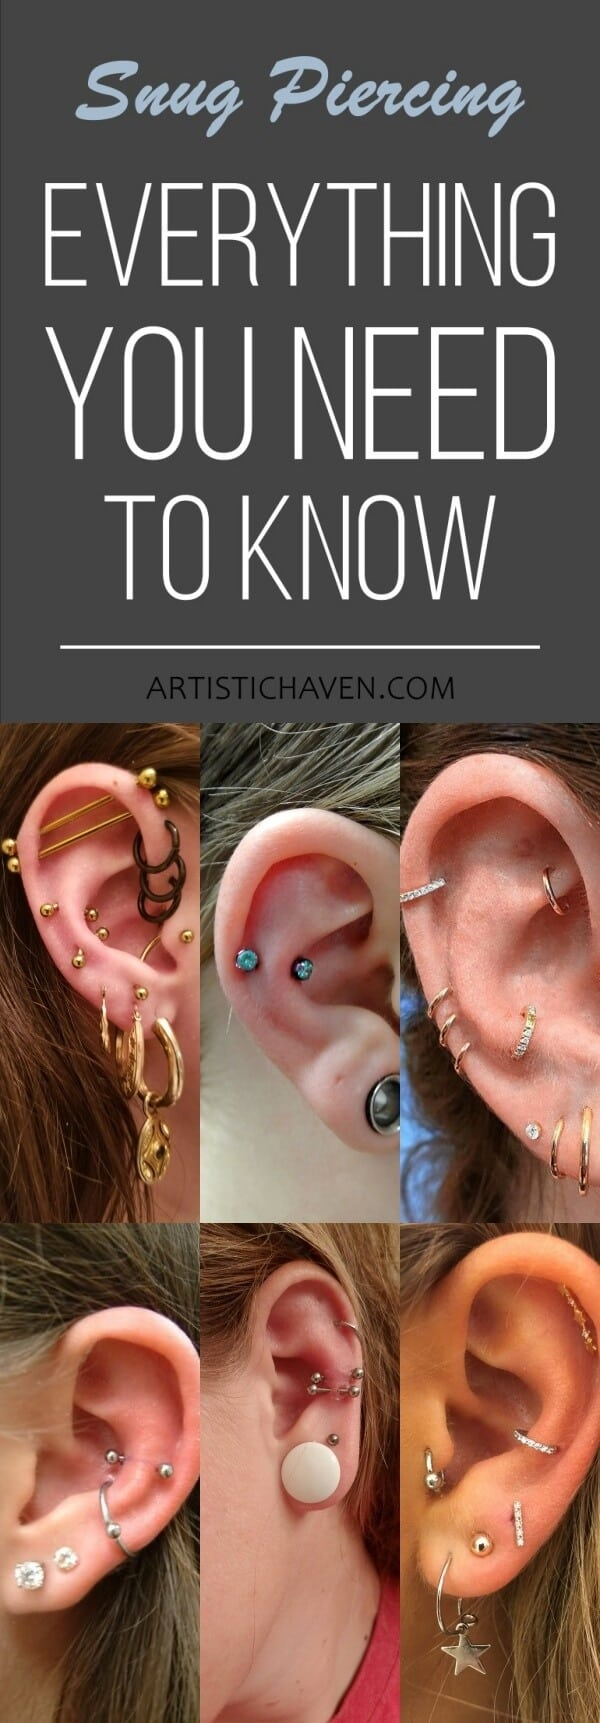 Snug Piercing: Everything You Need To Know